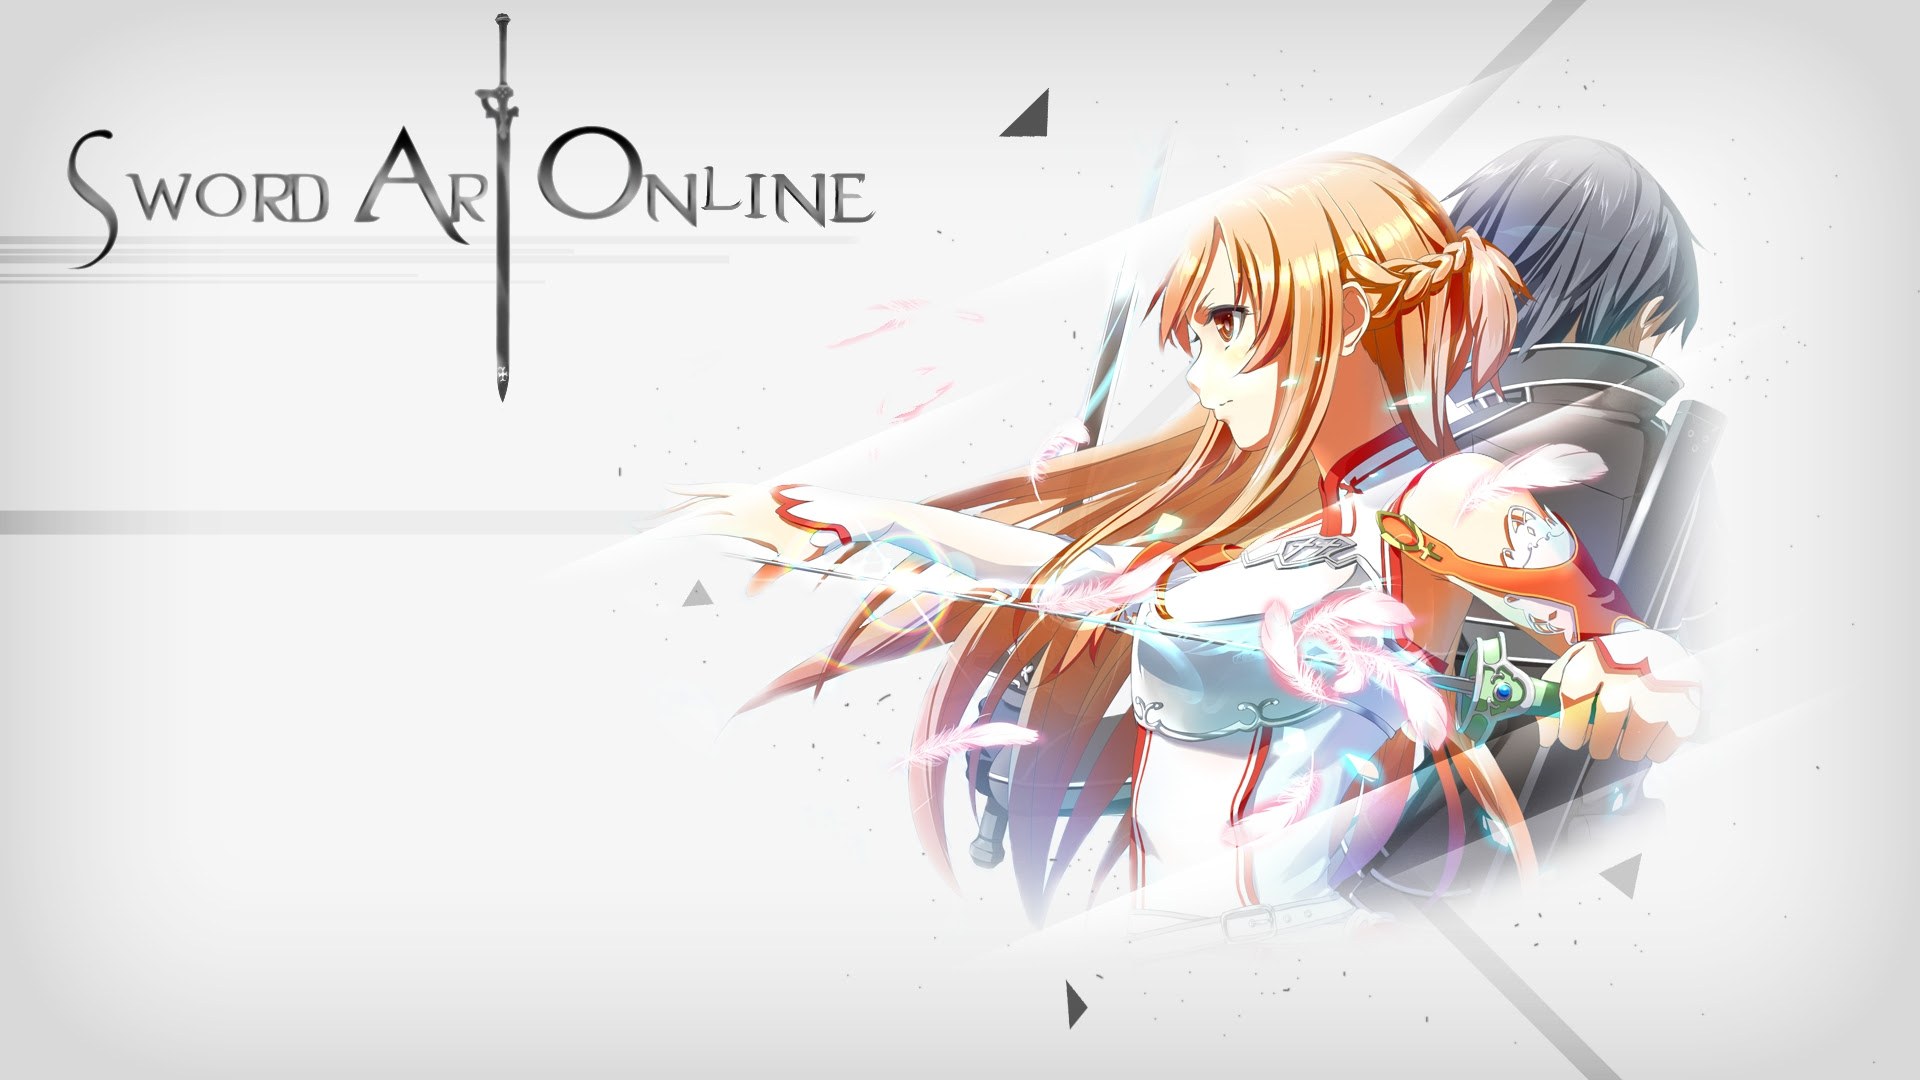 Sword Art Online Wallpaper 1920x1080 59845